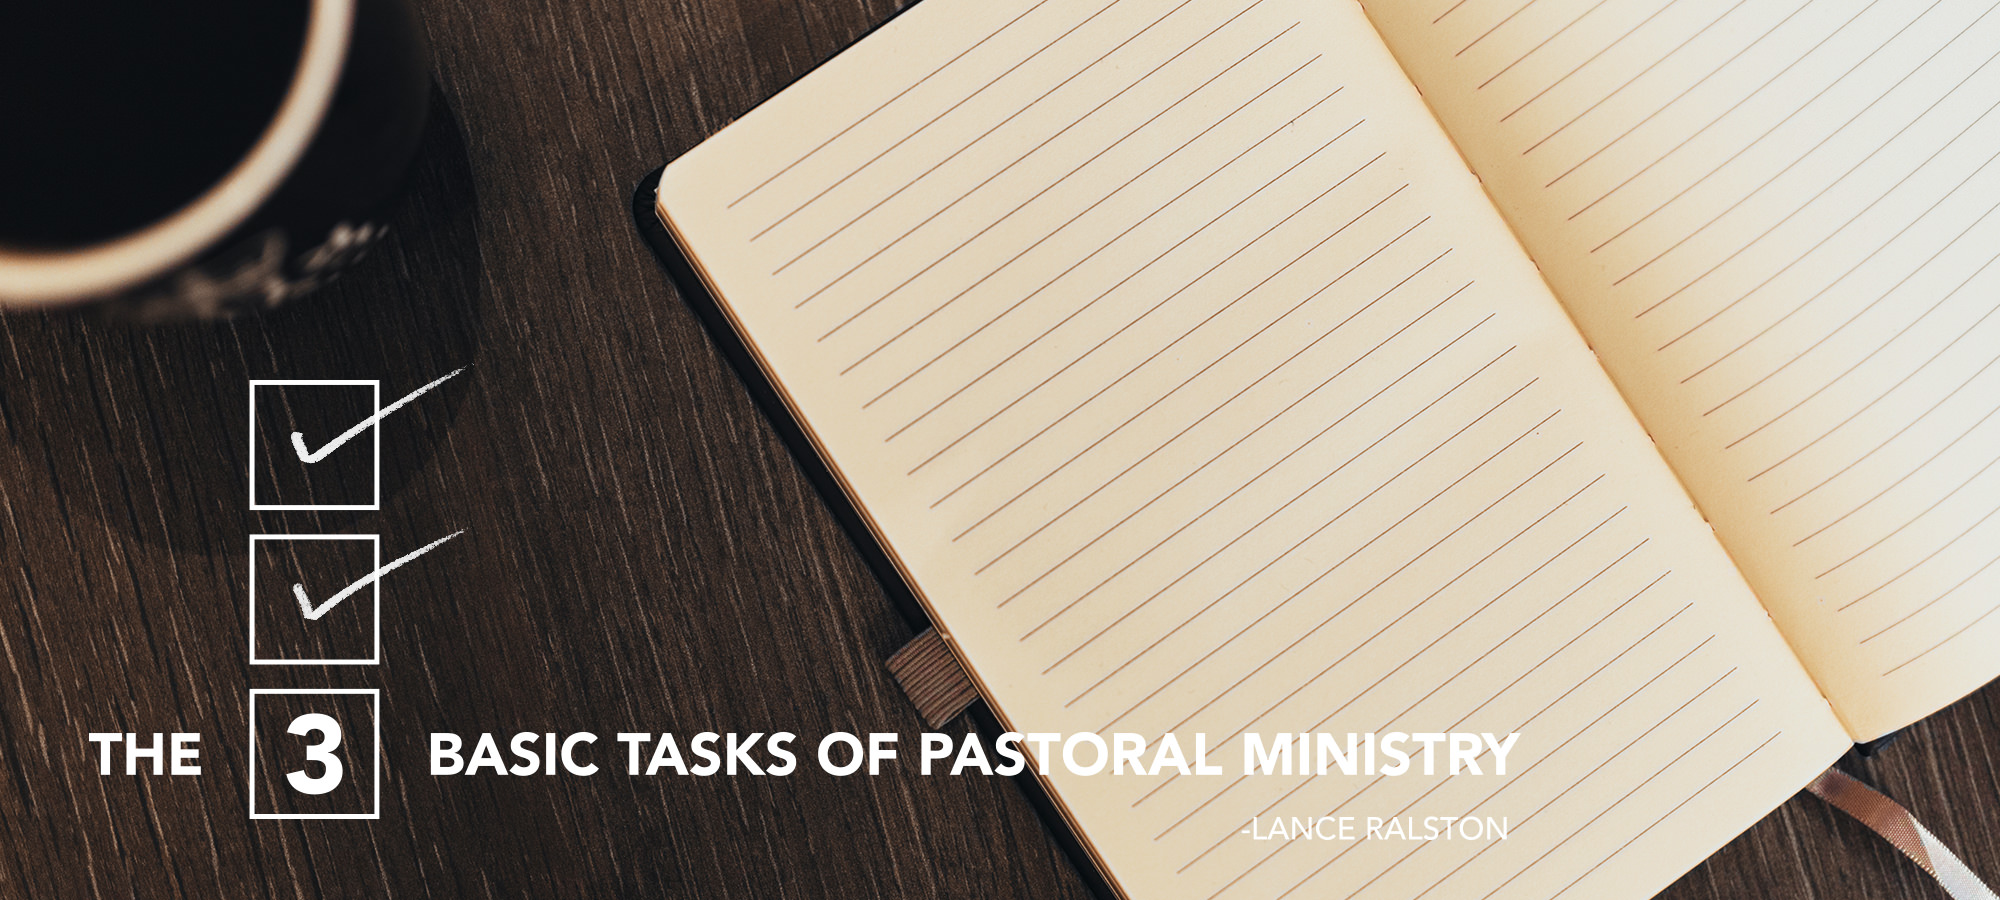 The 3 Basic Tasks of Pastoral Ministry